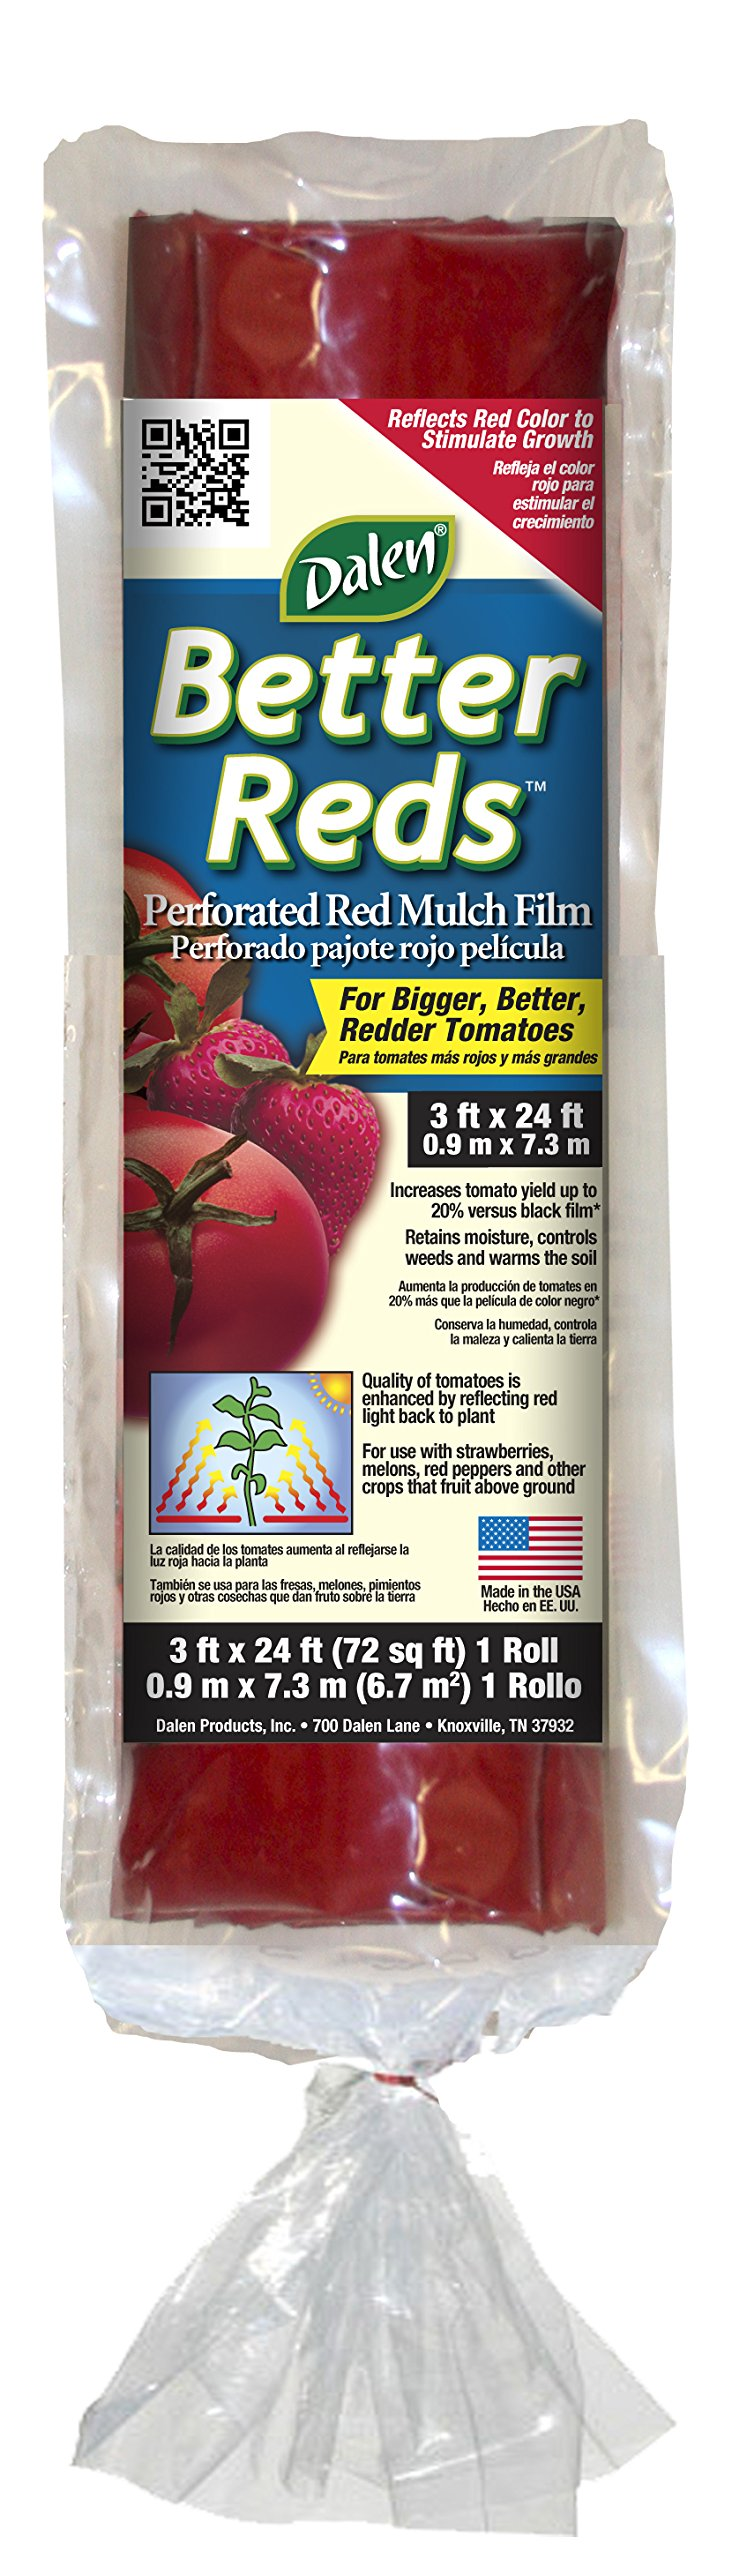 Dalen Gardeneer By Better Reds Mulch Film for Tomatoes 3' x 24' (BR12)